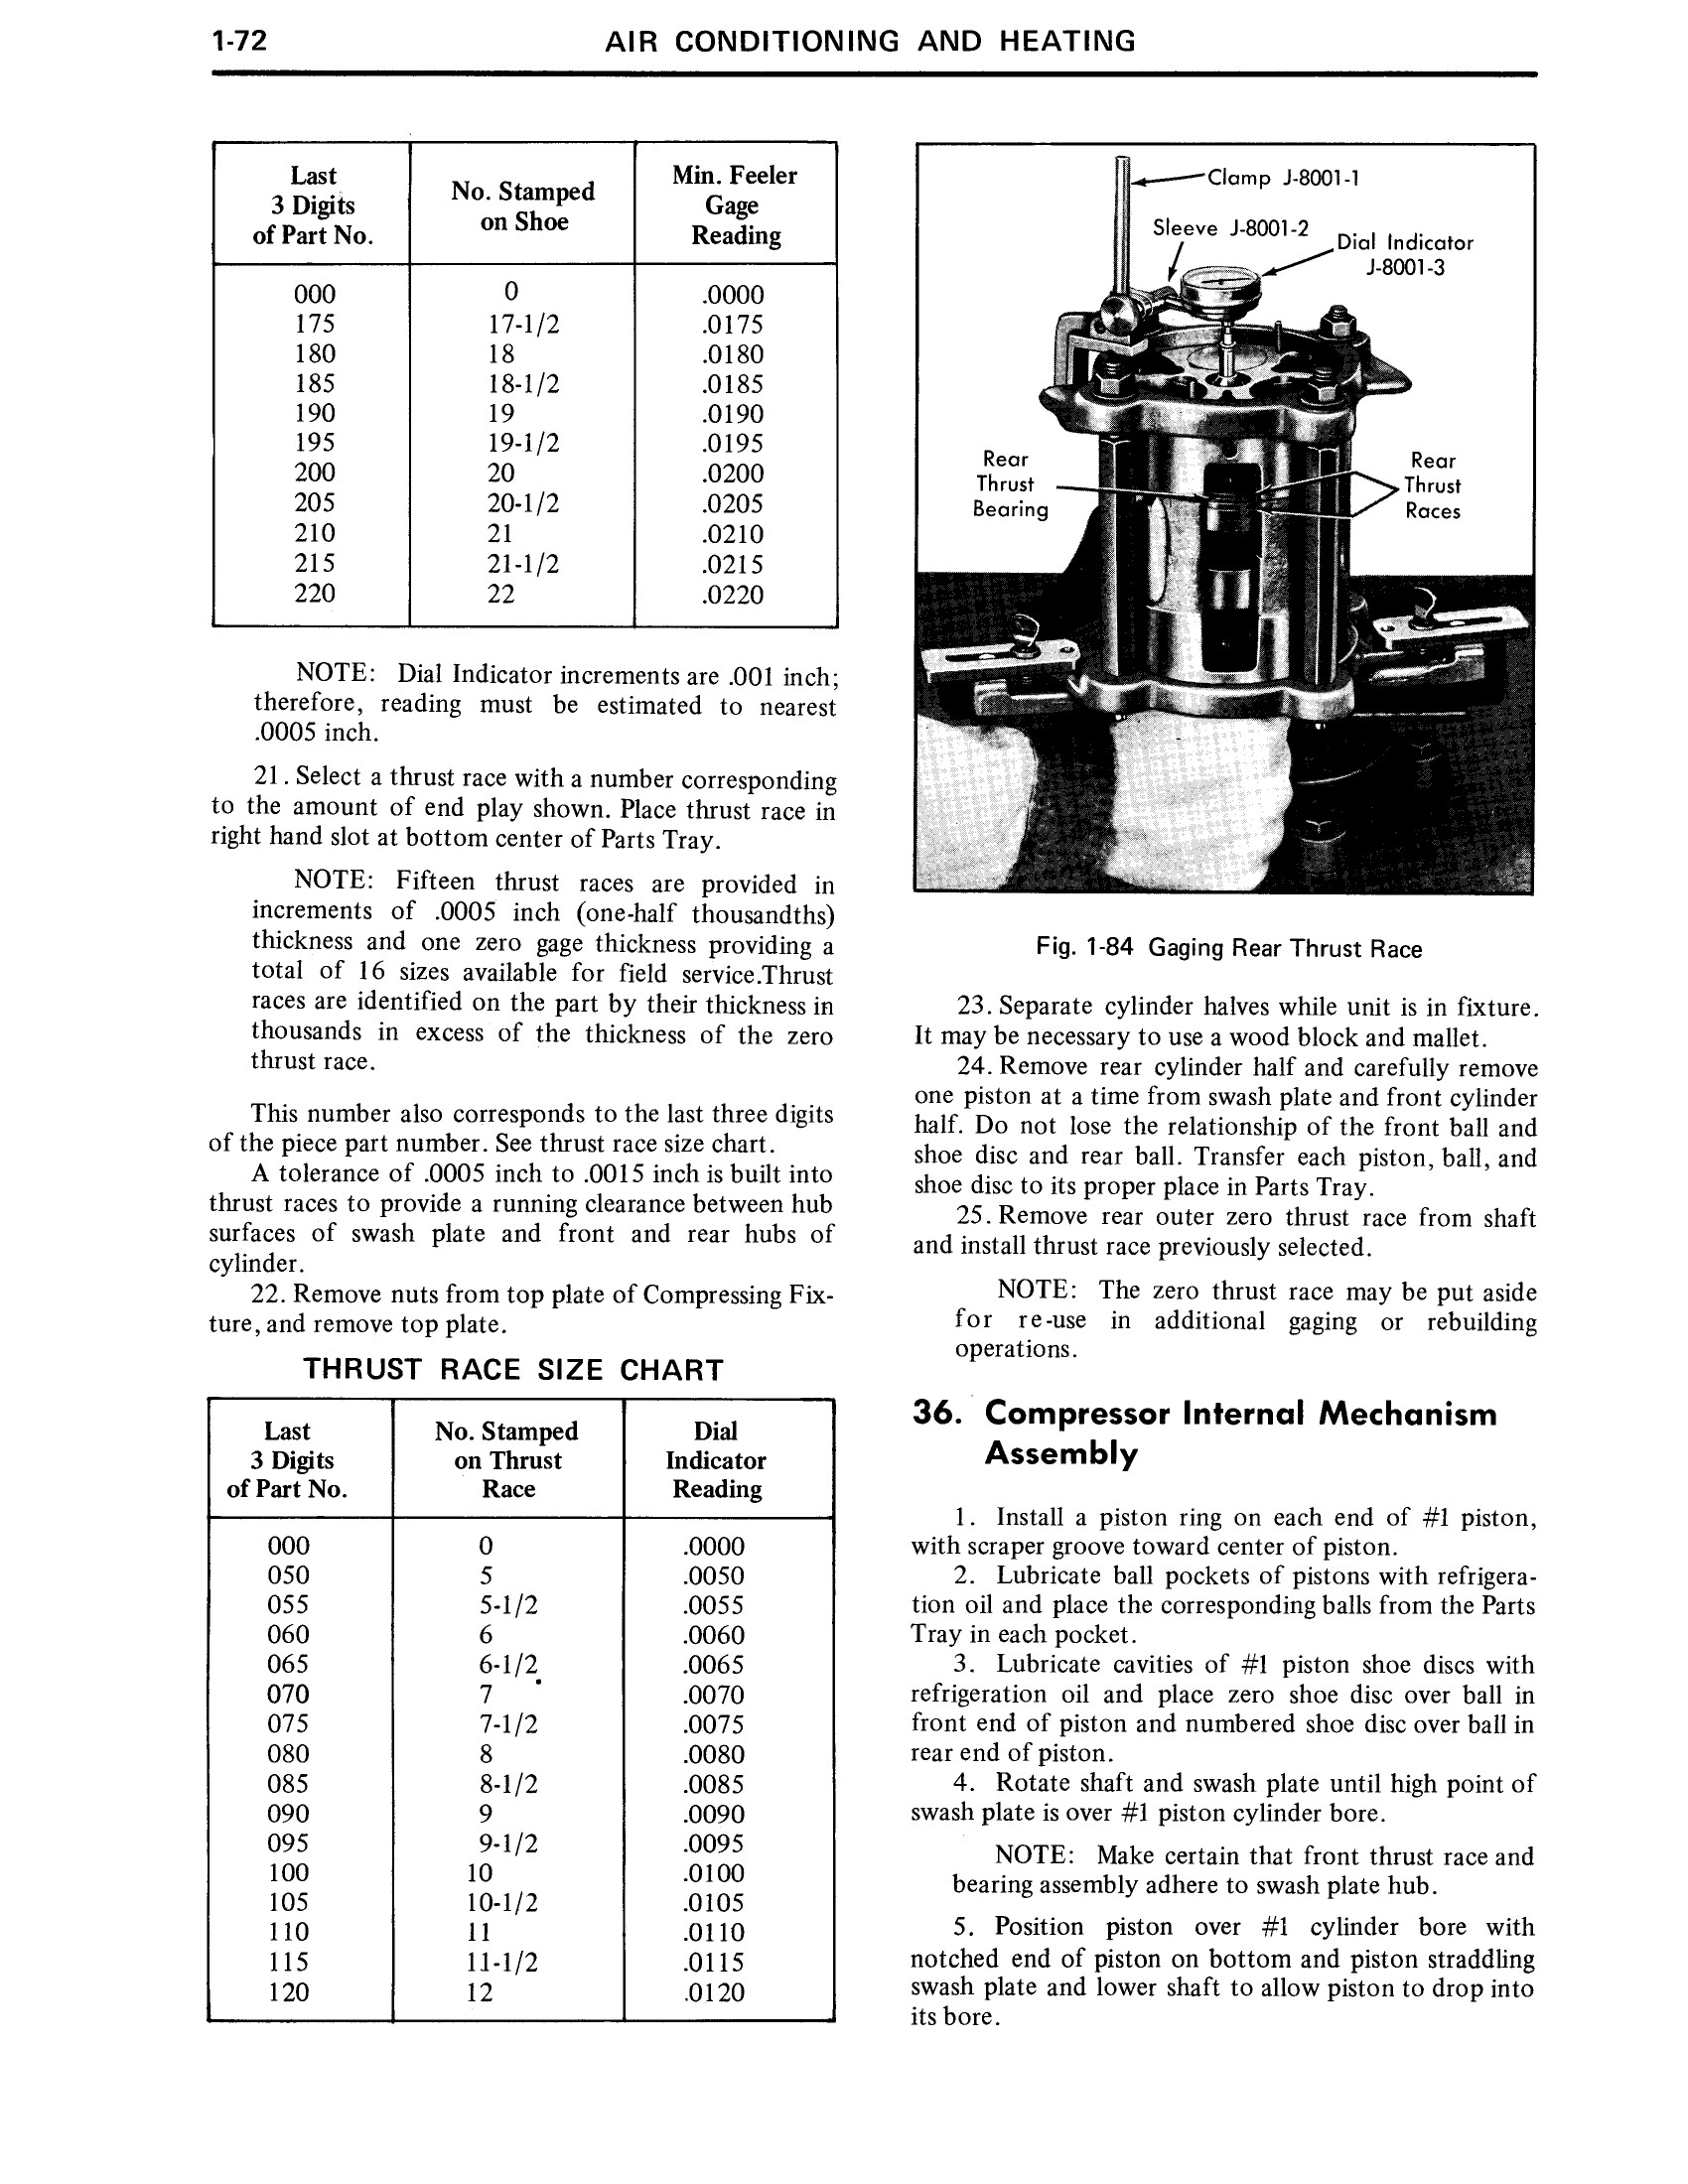 1971 Cadillac Shop Manual- AC and Heating Page 72 of 106